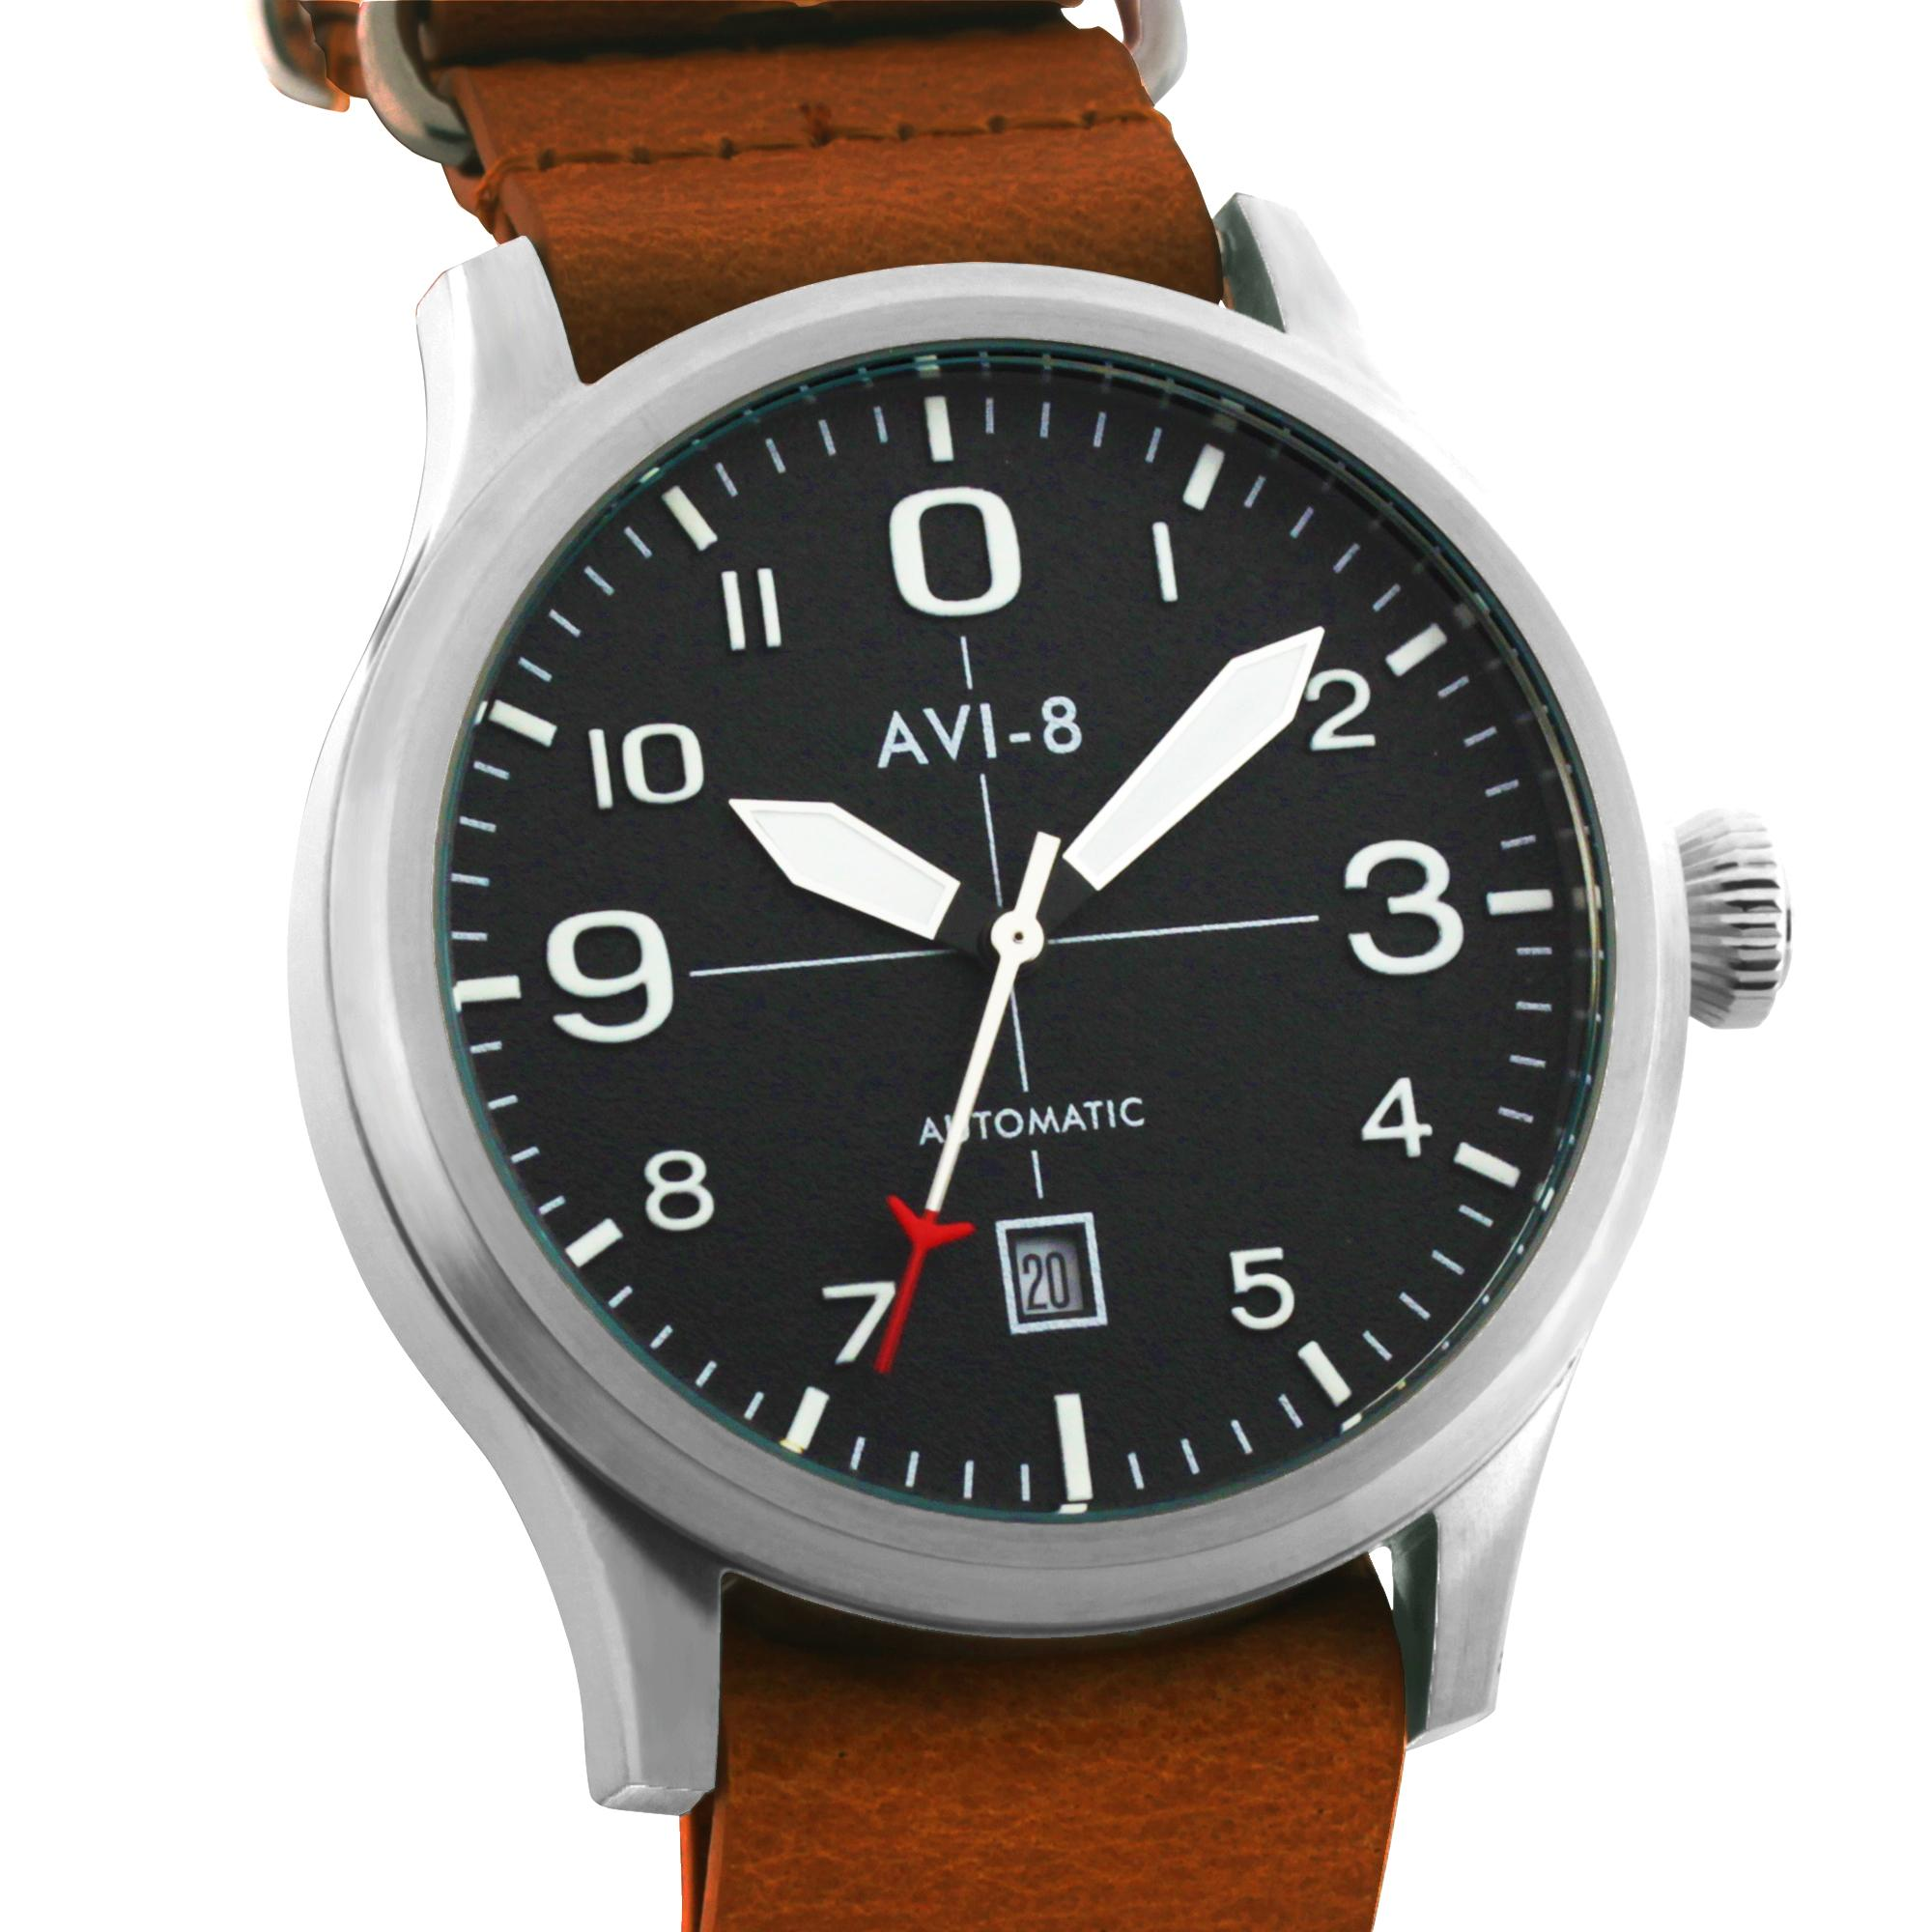 products watch store co buy official aviator watches parnis